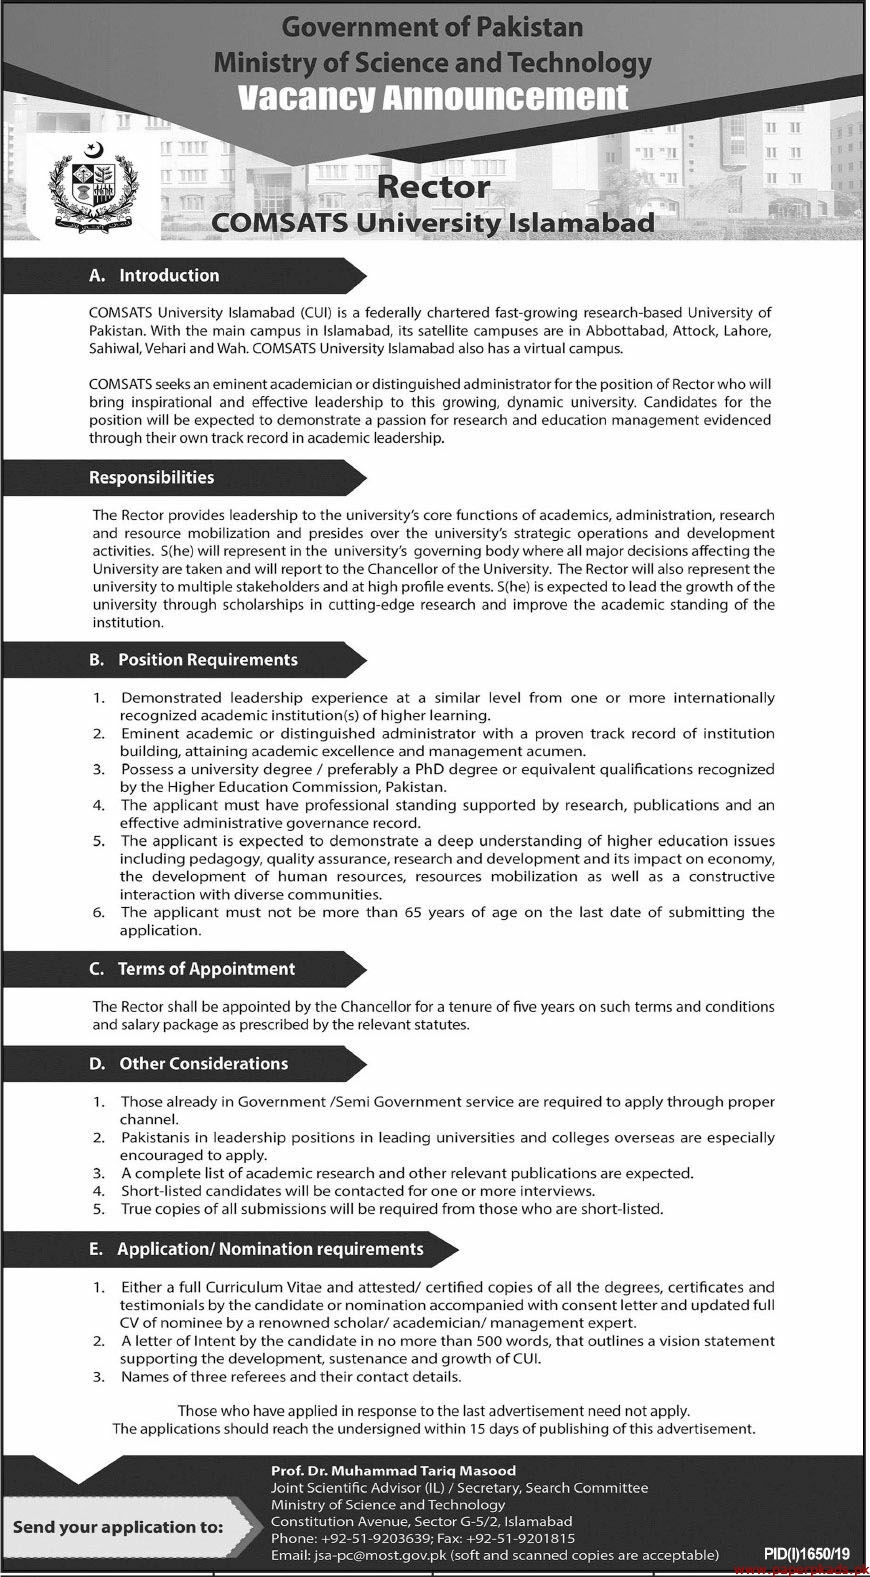 Government of Pakistan Ministry of Science and Technology Jobs 2019 Latest